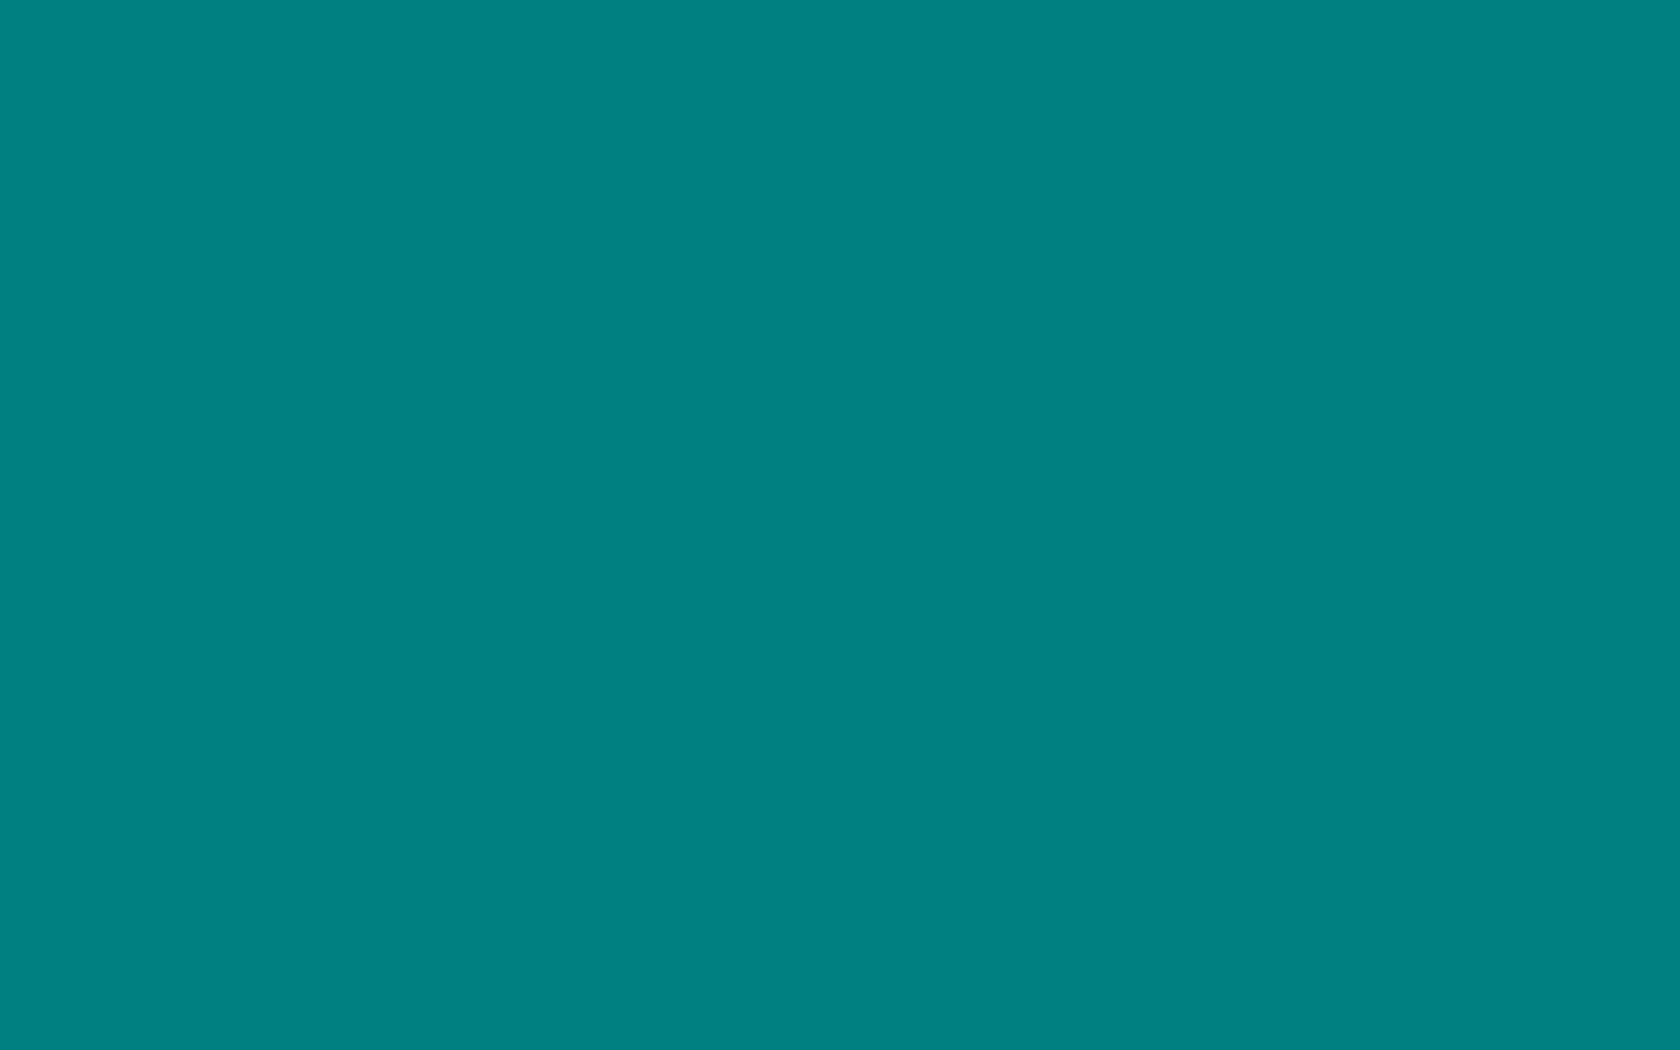 Teal Color Is A Deep Blue Green Dark Cyan Gets Its Name From The Colored Area Around Eyes Of Common Member